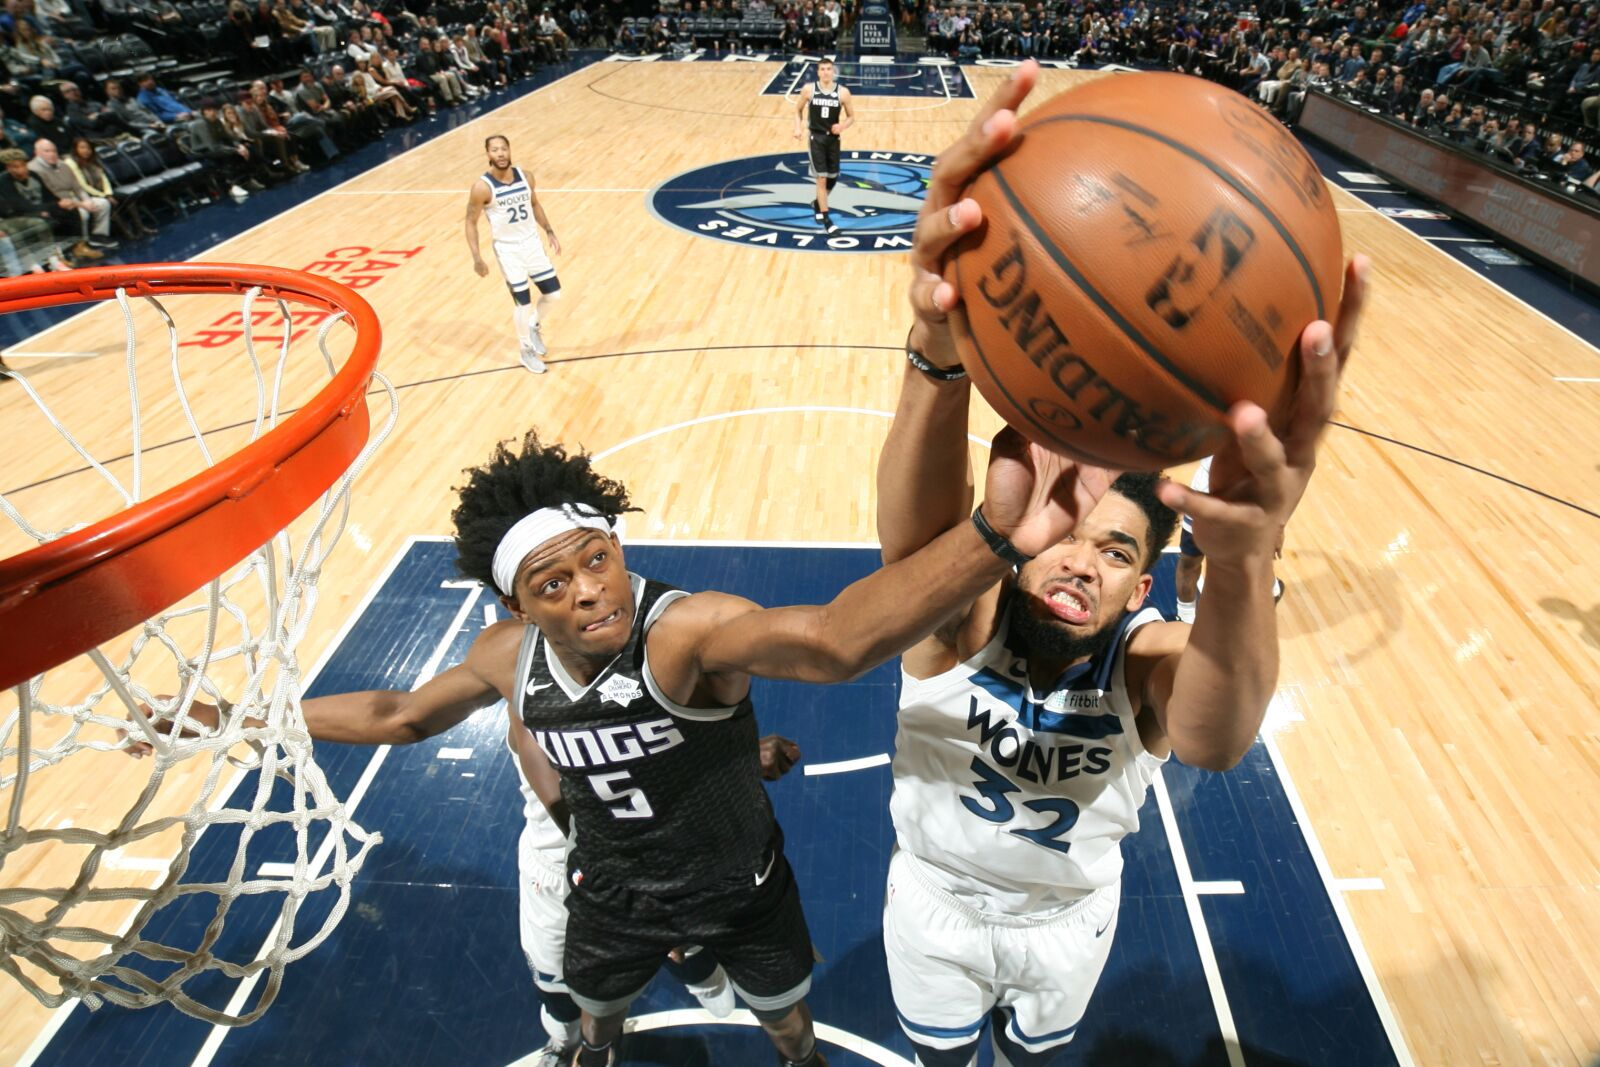 Sacramento Kings Vs Timberwolves Two Teams In Freefalls